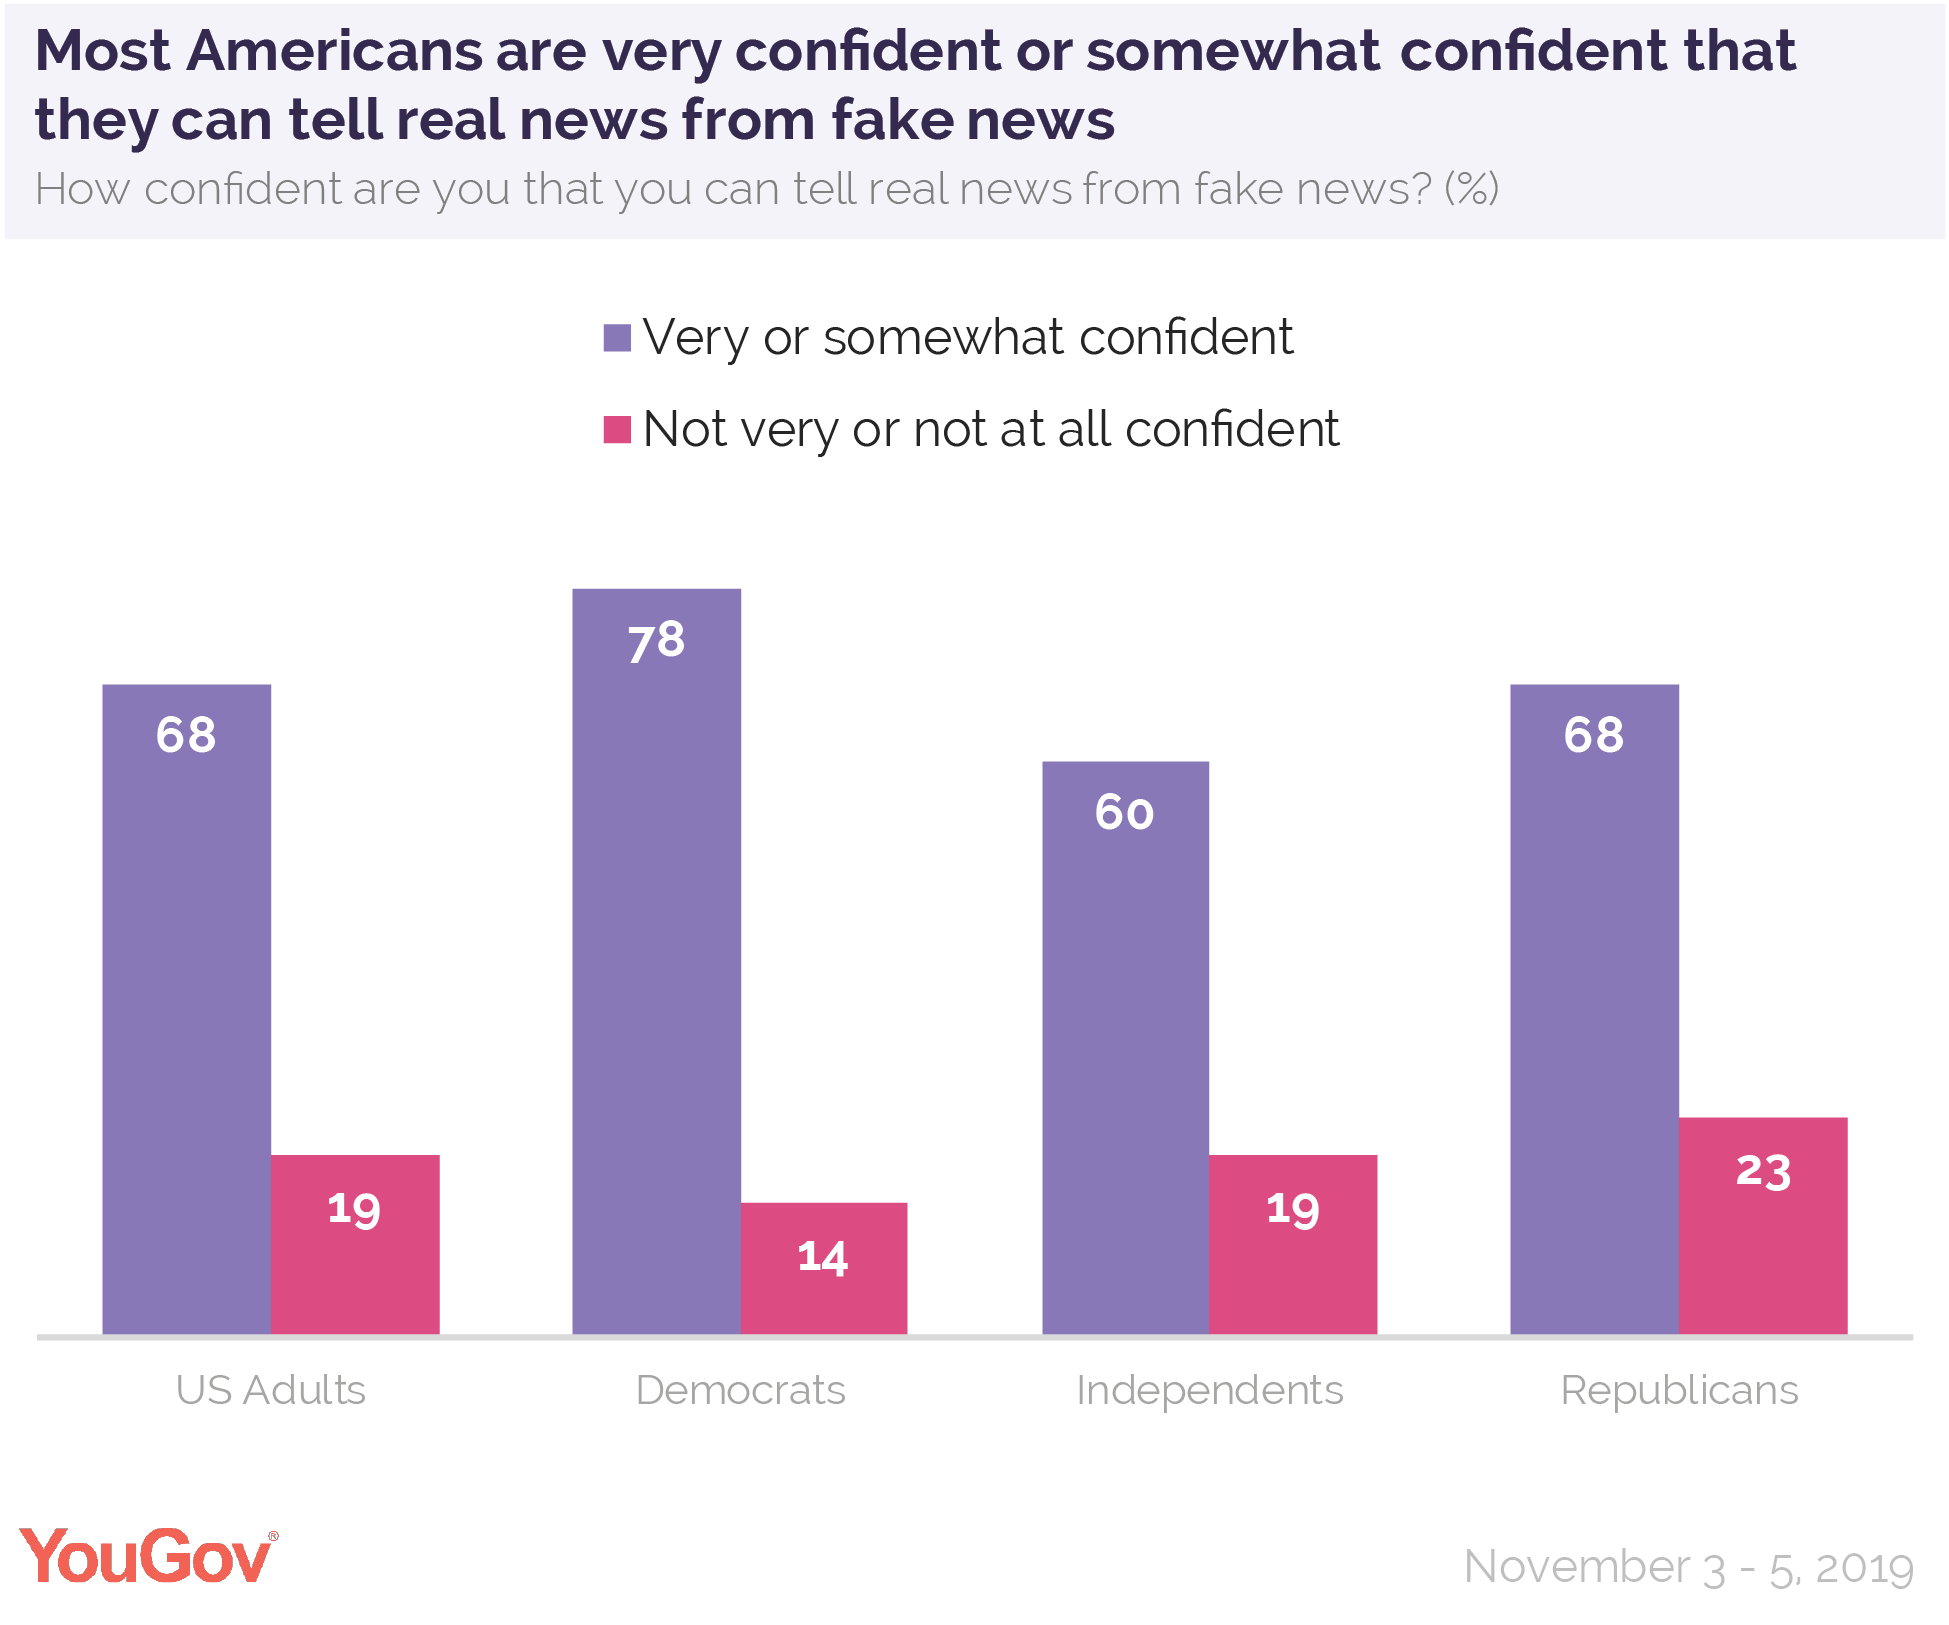 Most Americans are very confident or somewhat confident that they call tell real news from fake news